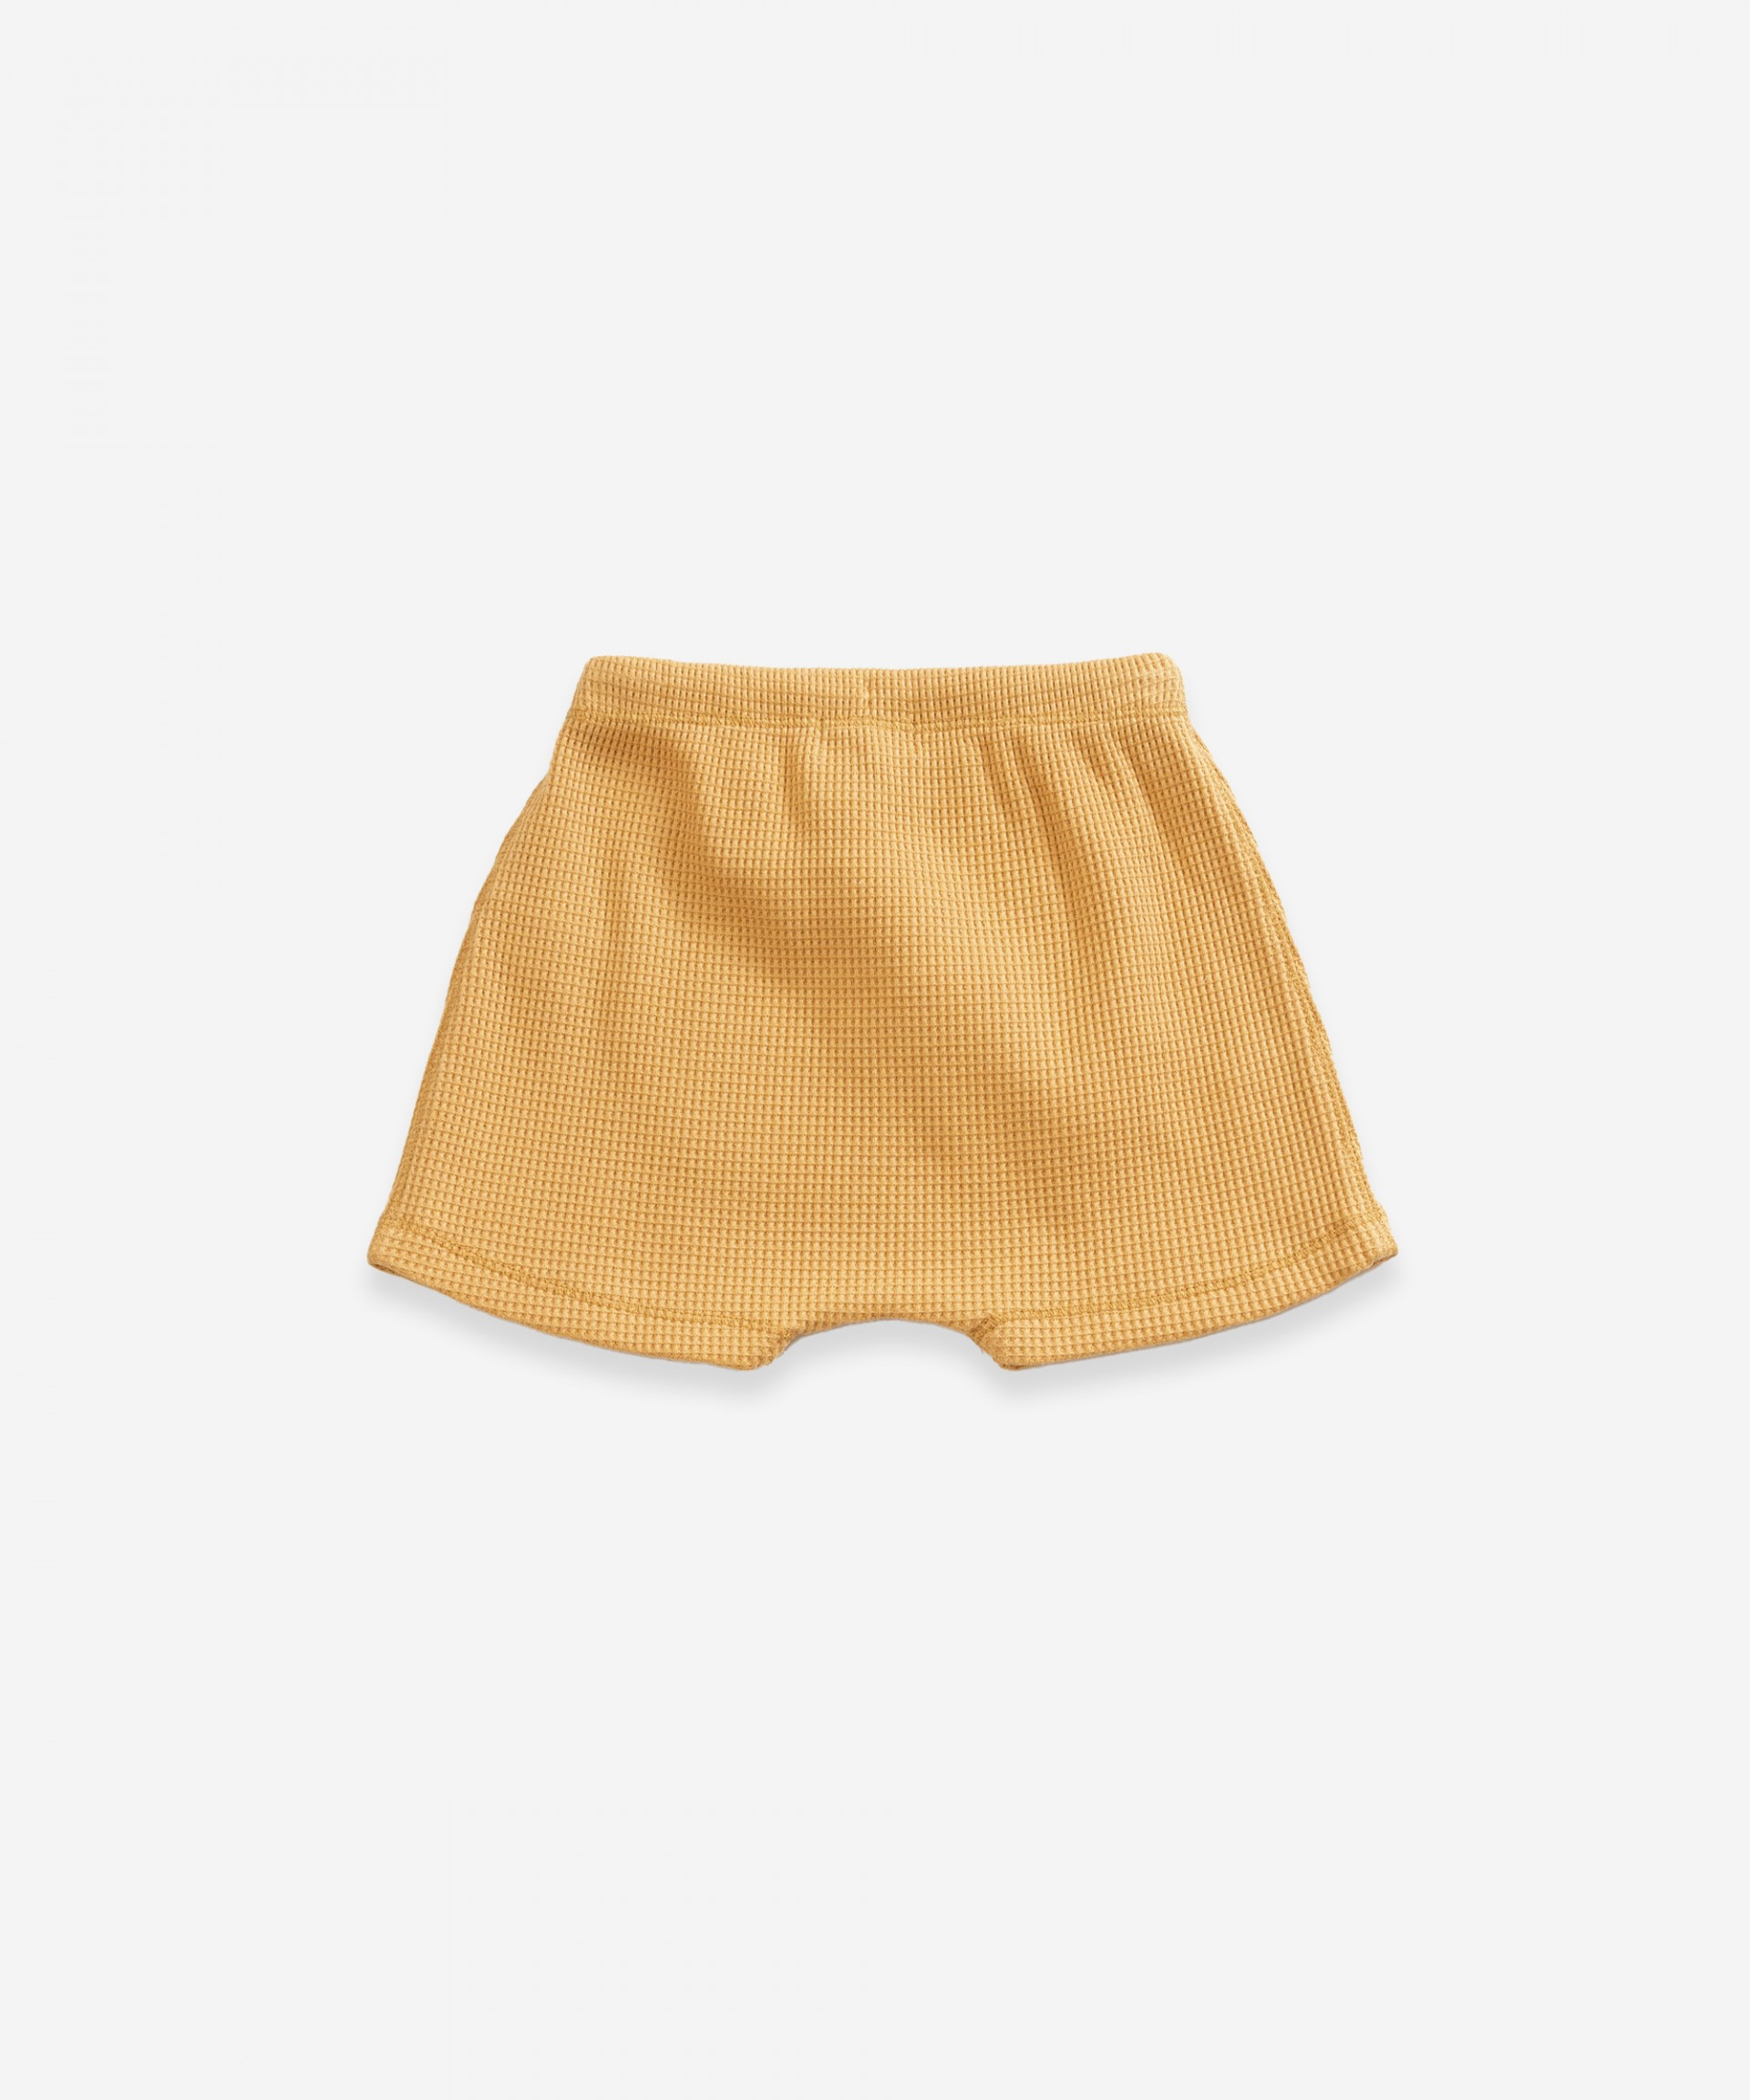 Shorts with kangaroo pocket in organic cotton | Weaving